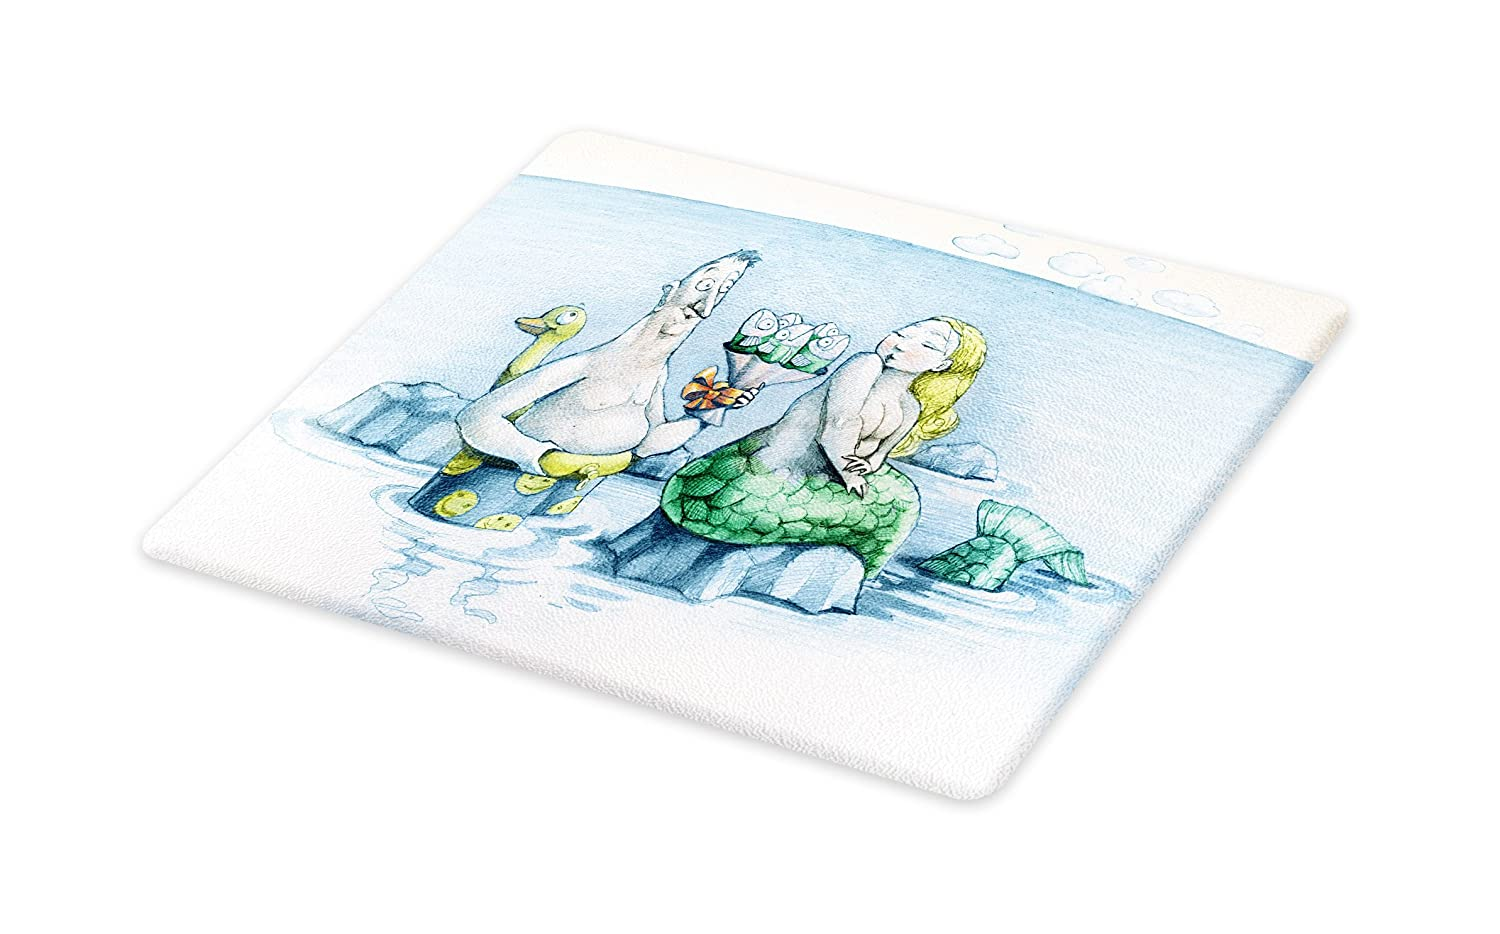 Lunarable Underwater Cutting Board, Funny Man Gives a Mischievous Mermaid a Bouquet of Flowers Made From Fish, Decorative Tempered Glass Cutting and Serving Board, Wine Bottle Shape, Blue Green Yellow